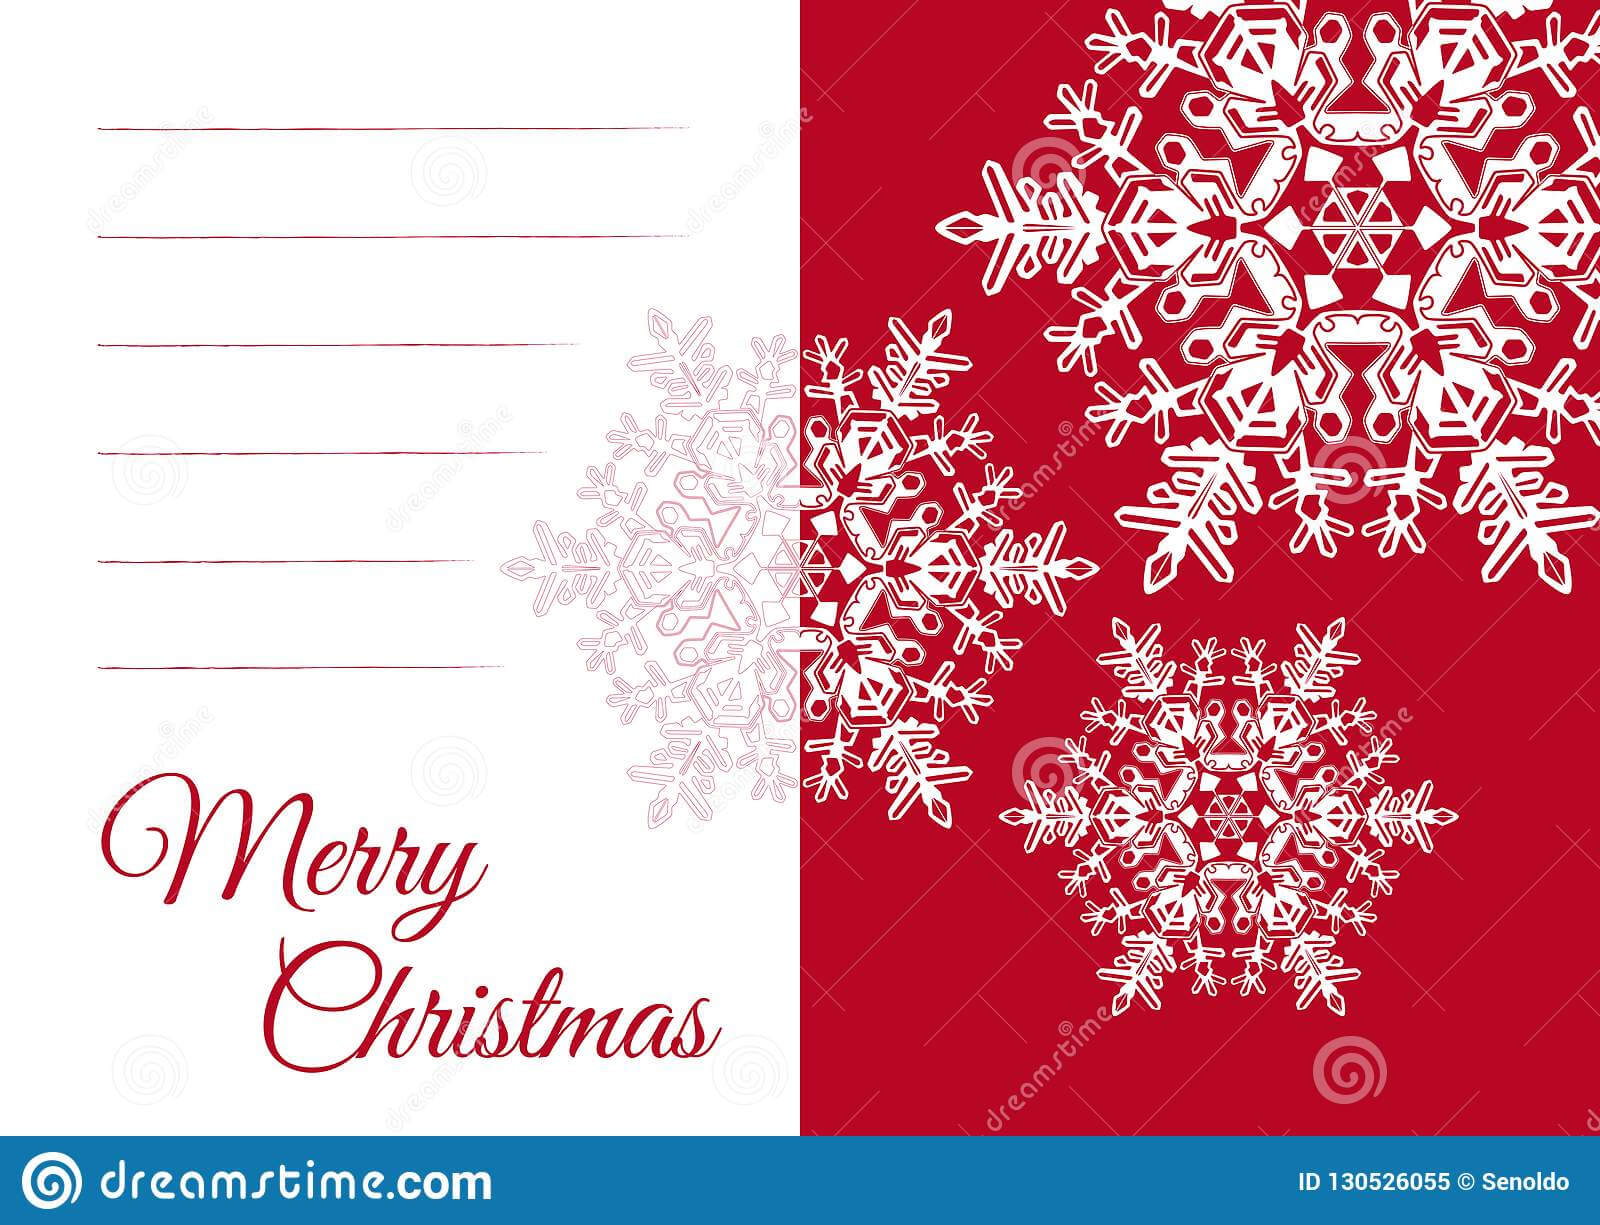 Christmas Greeting Card Template With Blank Text Field Stock With Regard To Blank Christmas Card Templates Free